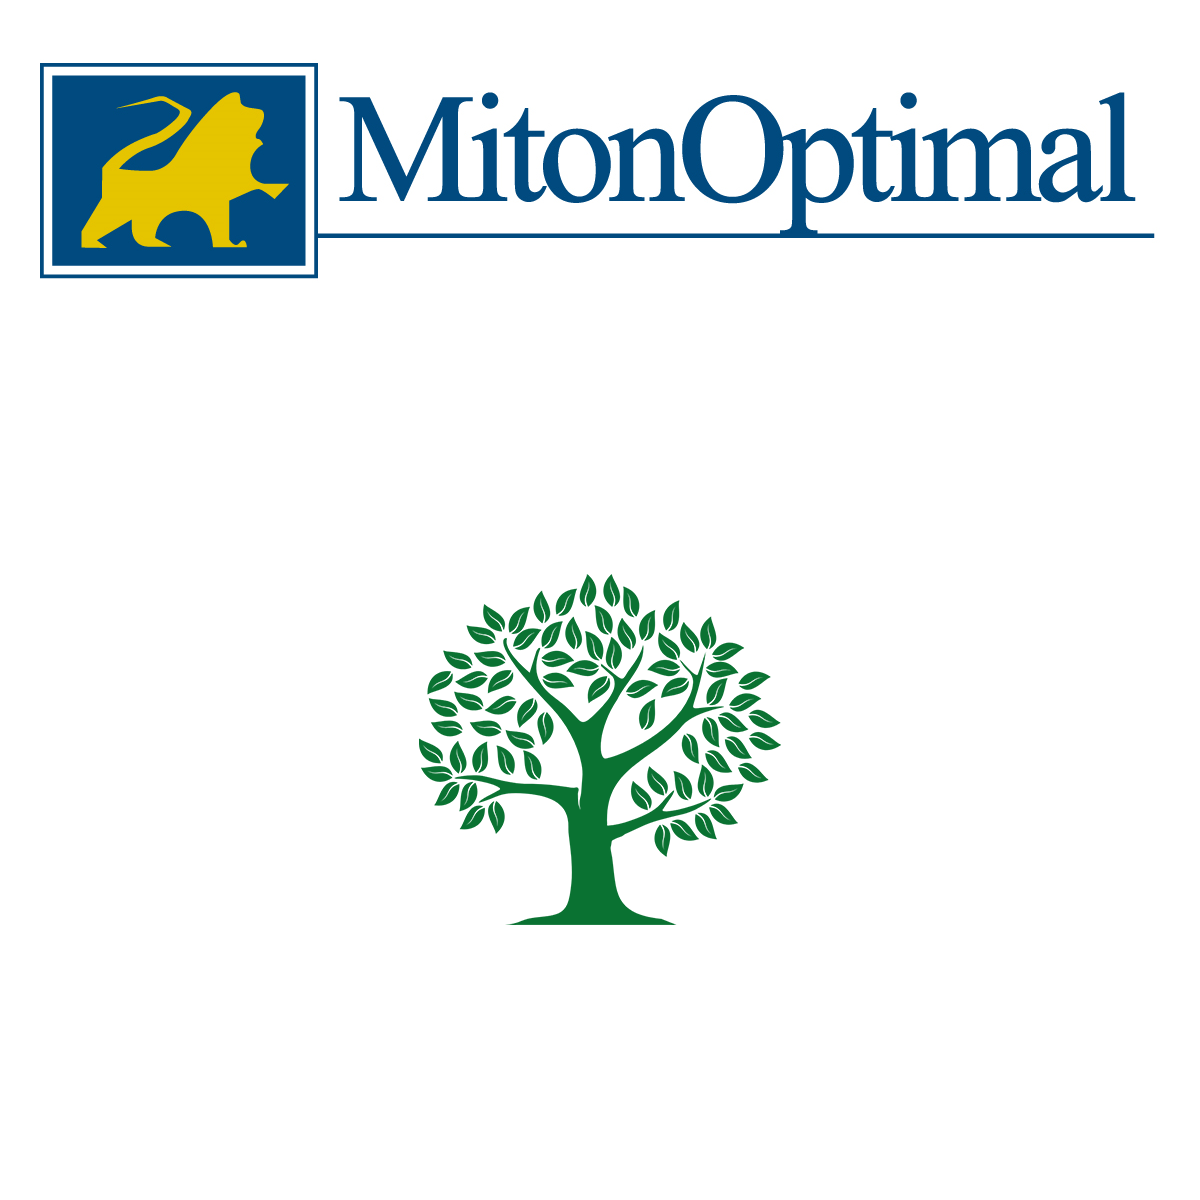 MitonOptimal UK Limited